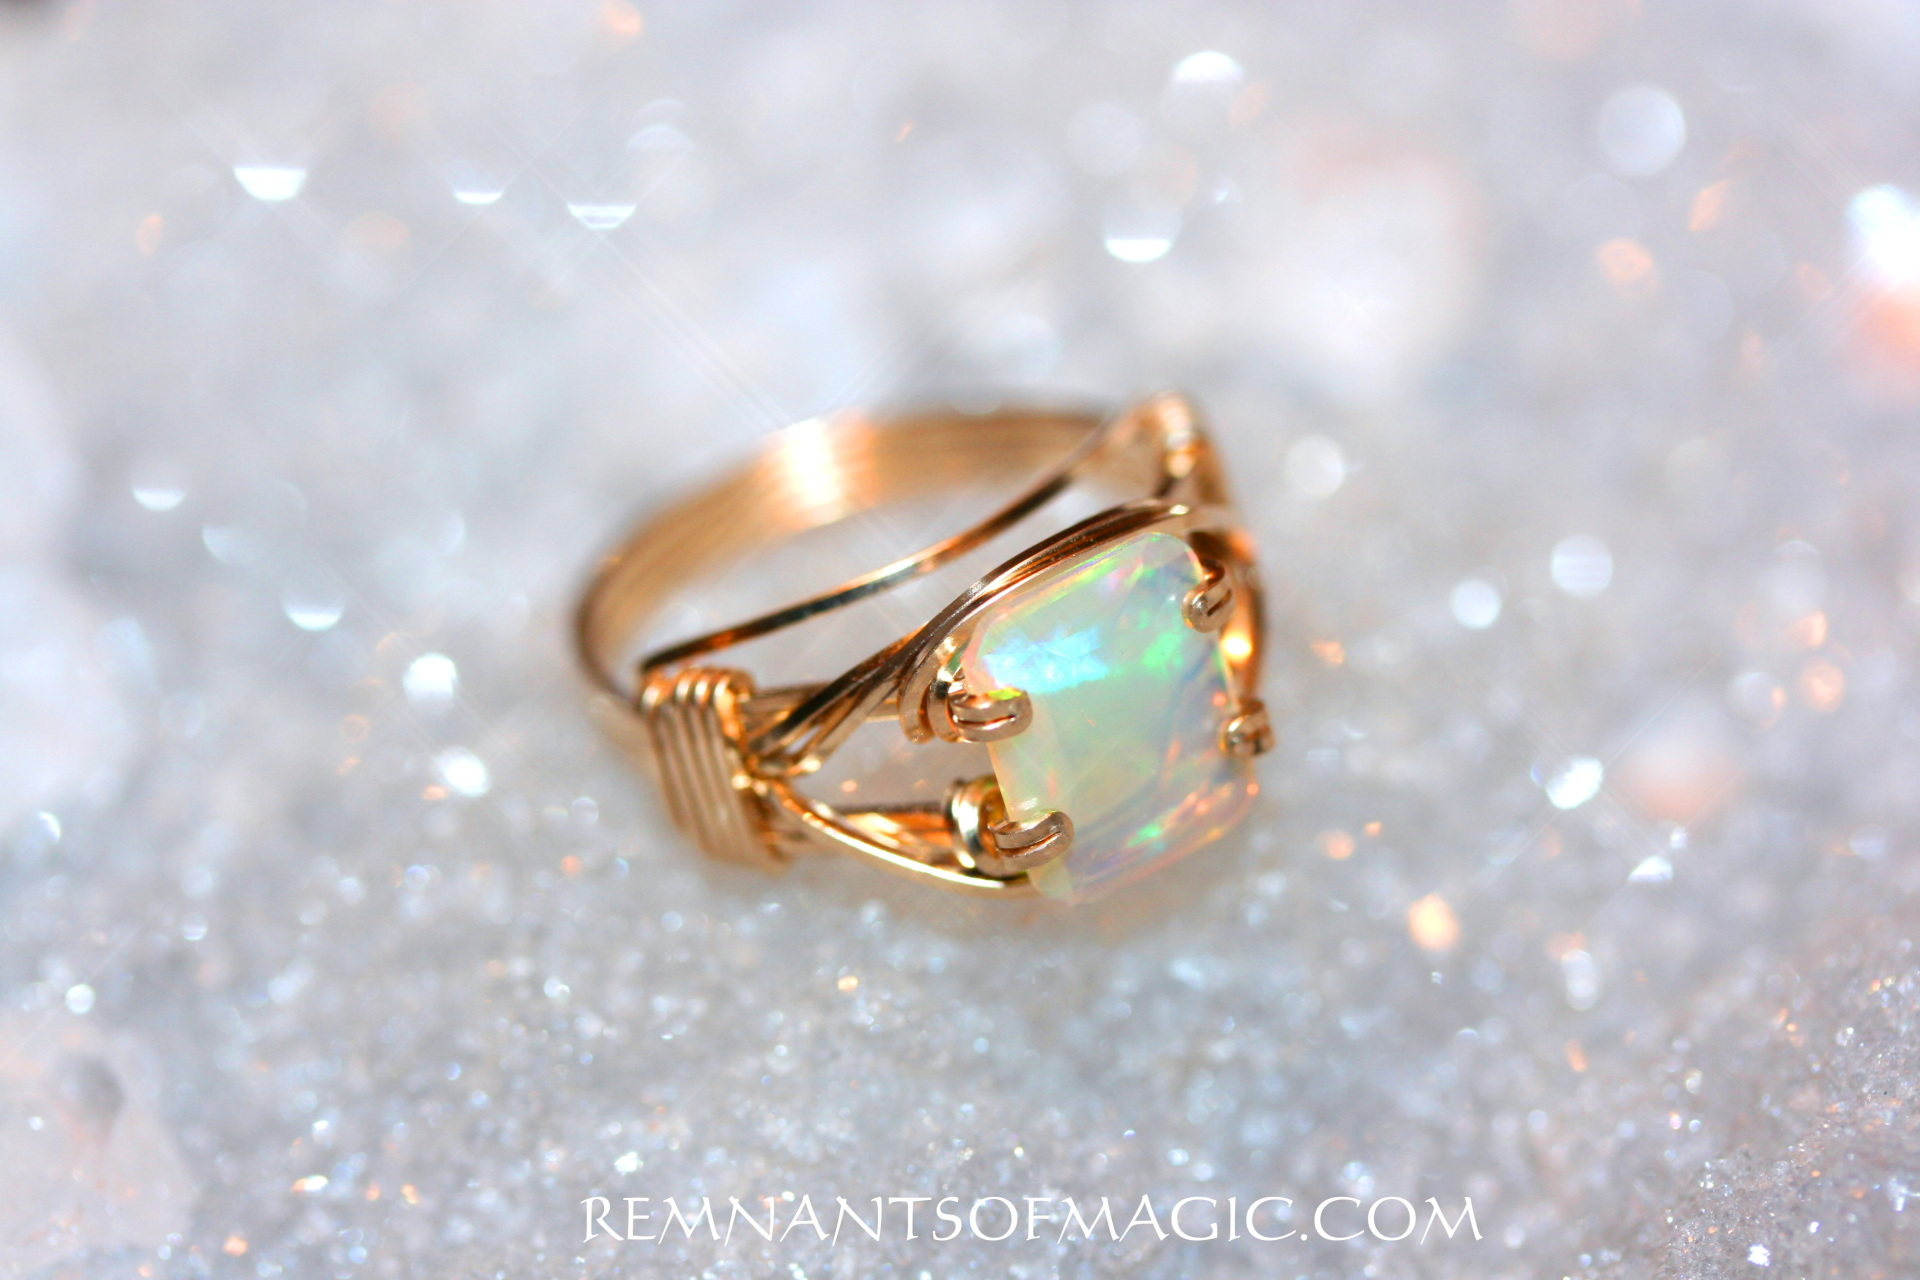 Wire Wrapped Rings - Remnants of Magic